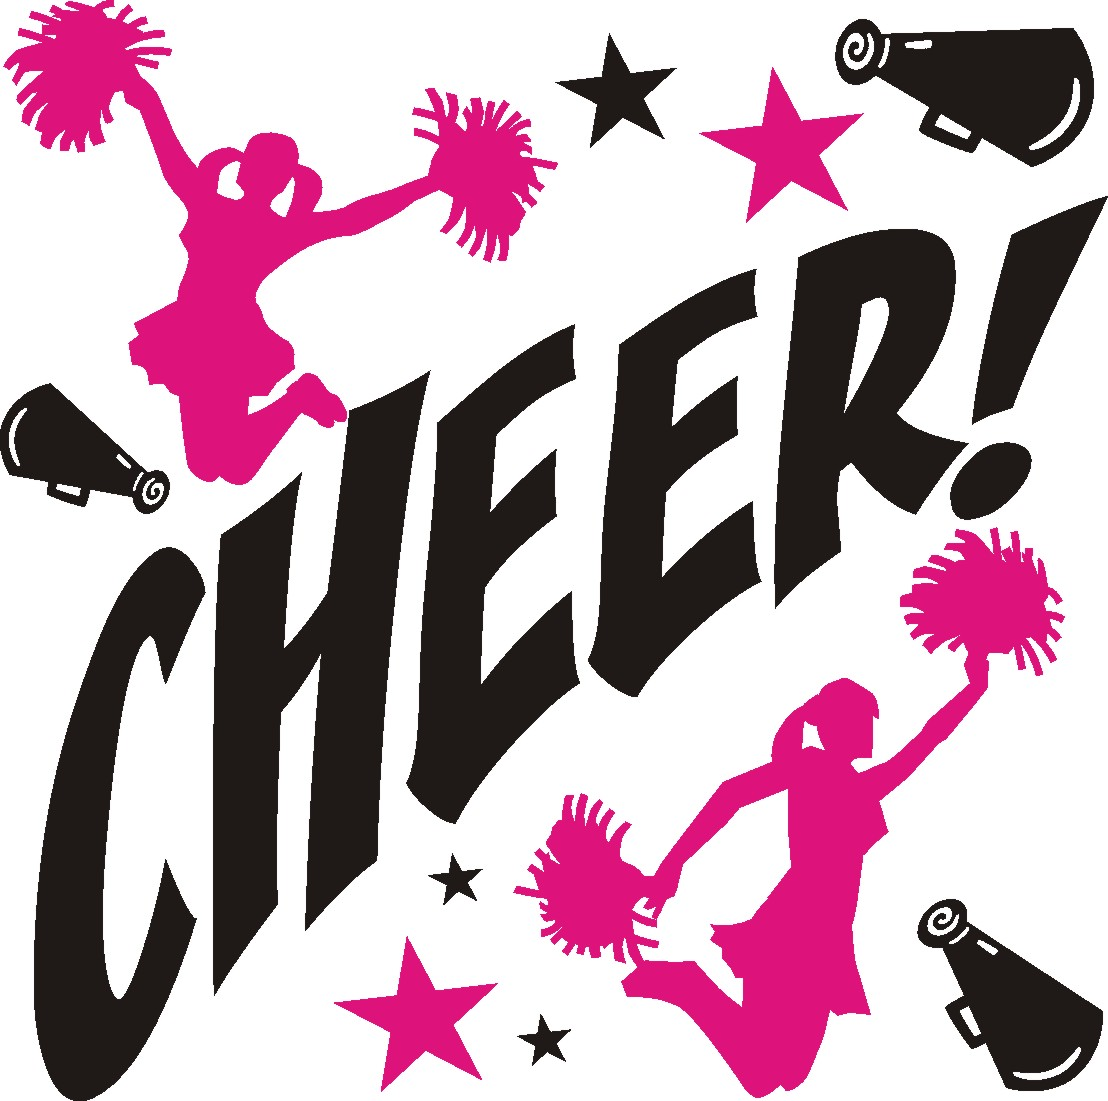 Silhouette Cheerleading Download Clip art - Heel Stretch Cliparts png  download - 800*800 - Free Transparent Silhouette png Download. - Clip Art  Library